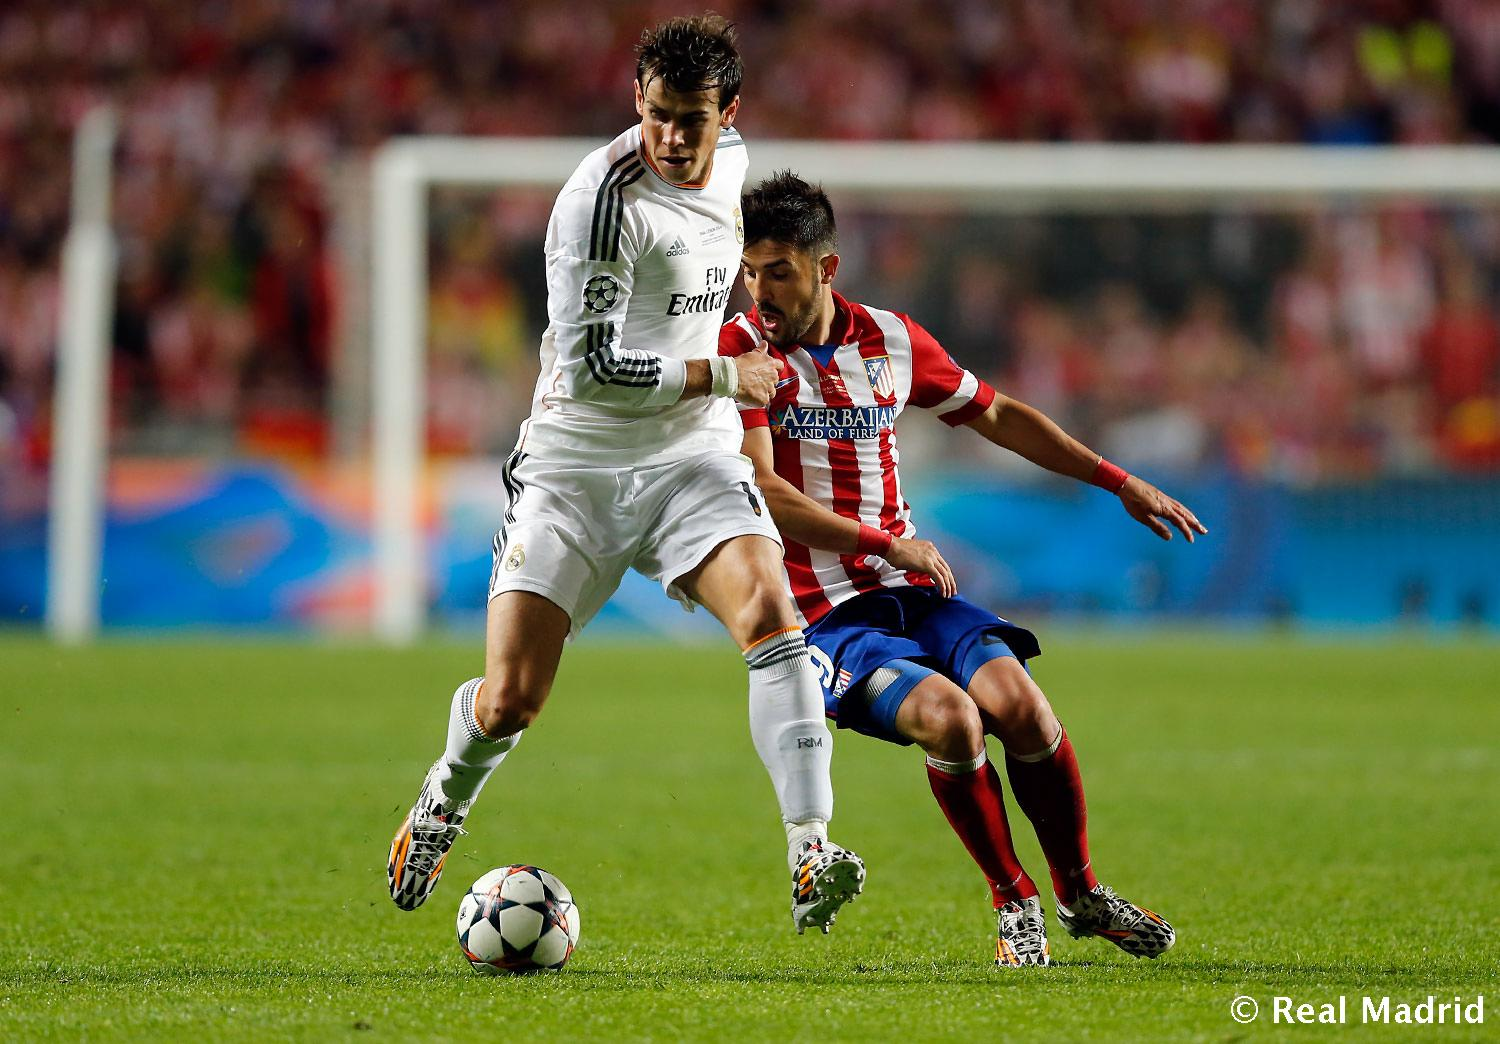 Real Madrid - Real Madrid - Atletico de Madrid - 24-05-2014